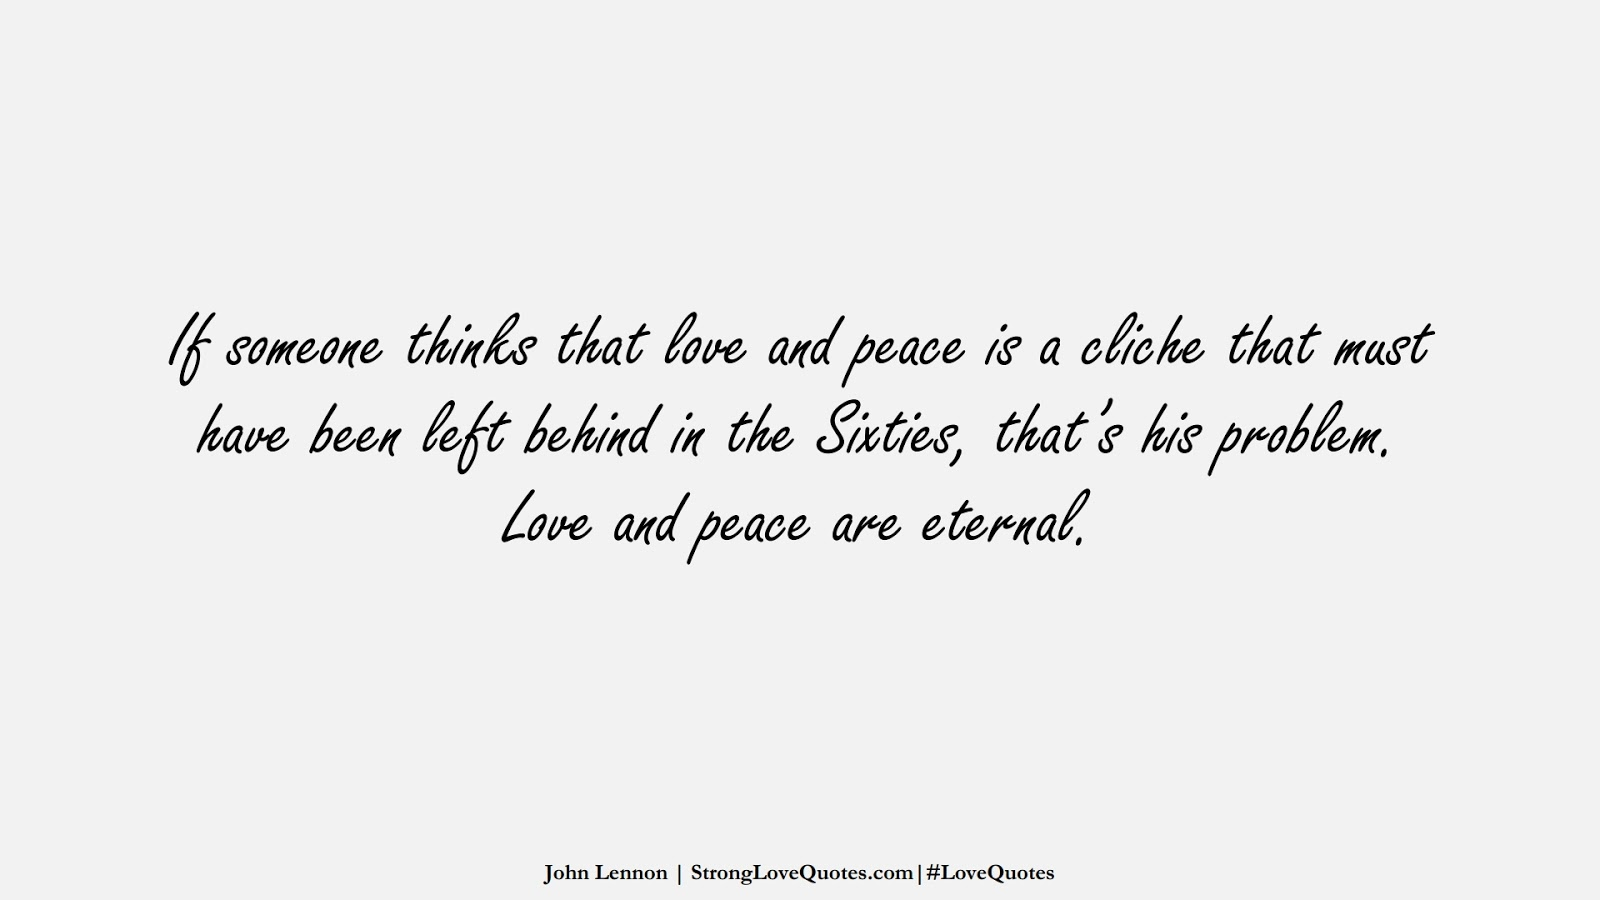 If someone thinks that love and peace is a cliche that must have been left behind in the Sixties, that's his problem. Love and peace are eternal. (John Lennon);  #LoveQuotes